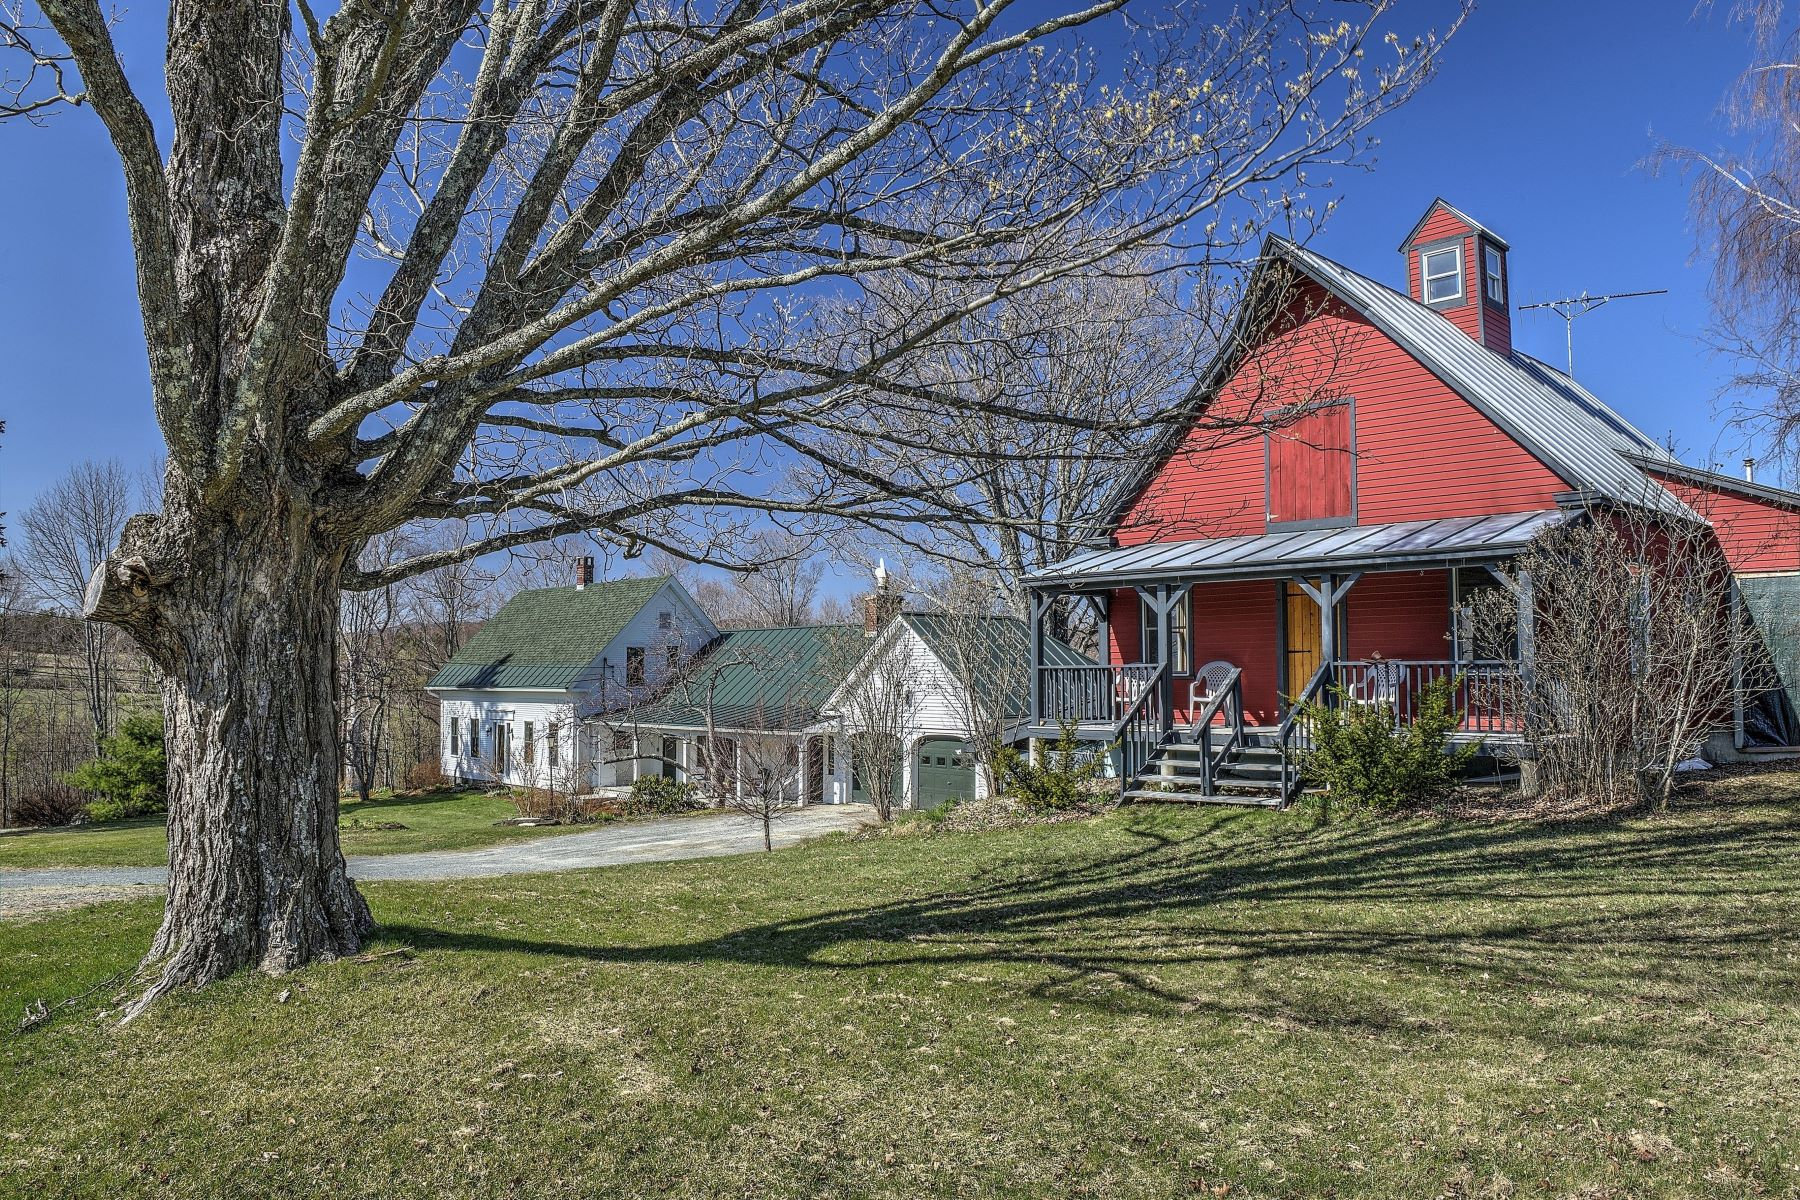 Single Family Home for Sale at Farm has views, orchards, efficiency 2317 North Rd Barnard, Vermont 05031 United States